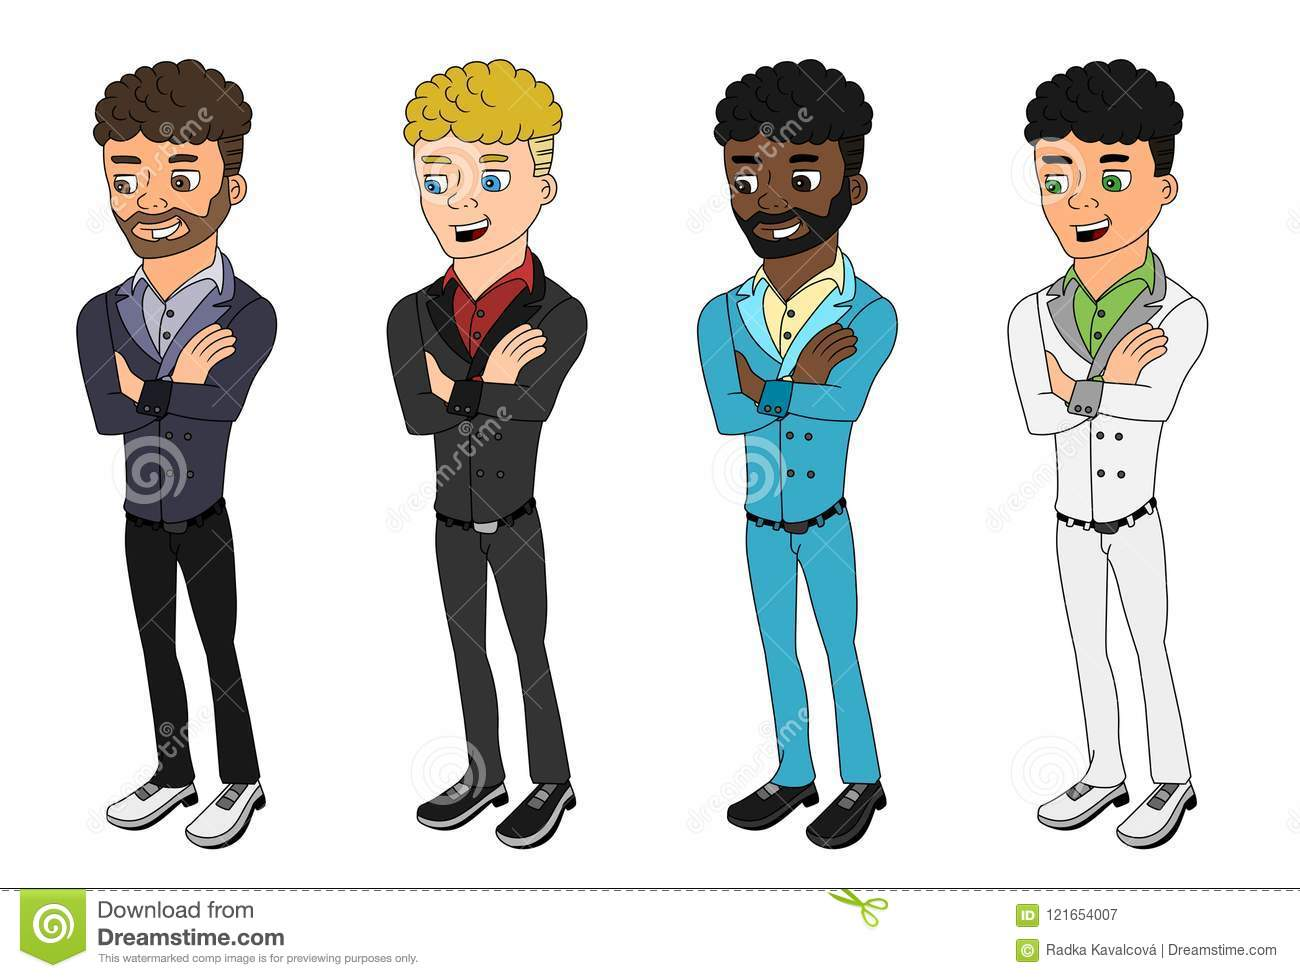 Diverse curly haired men cartoon